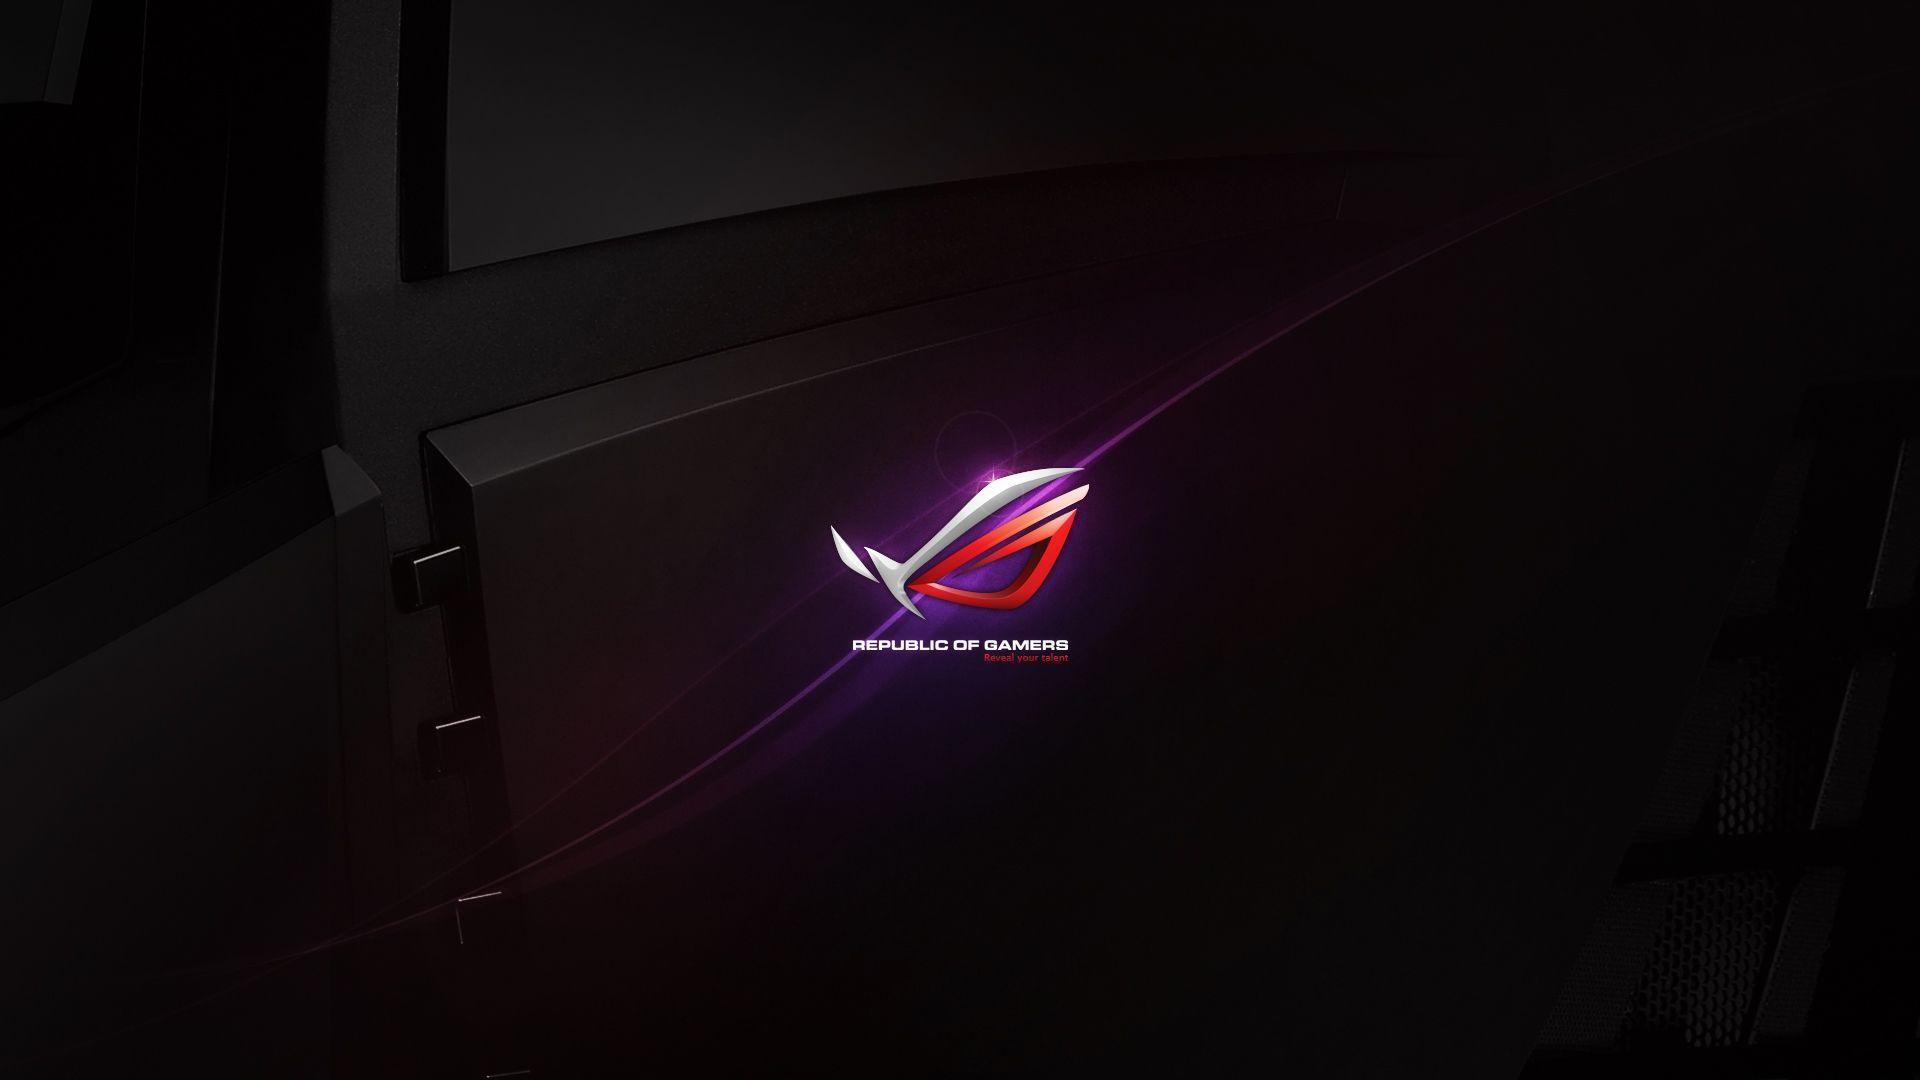 Asus Republic Of Gamers Wallpapers